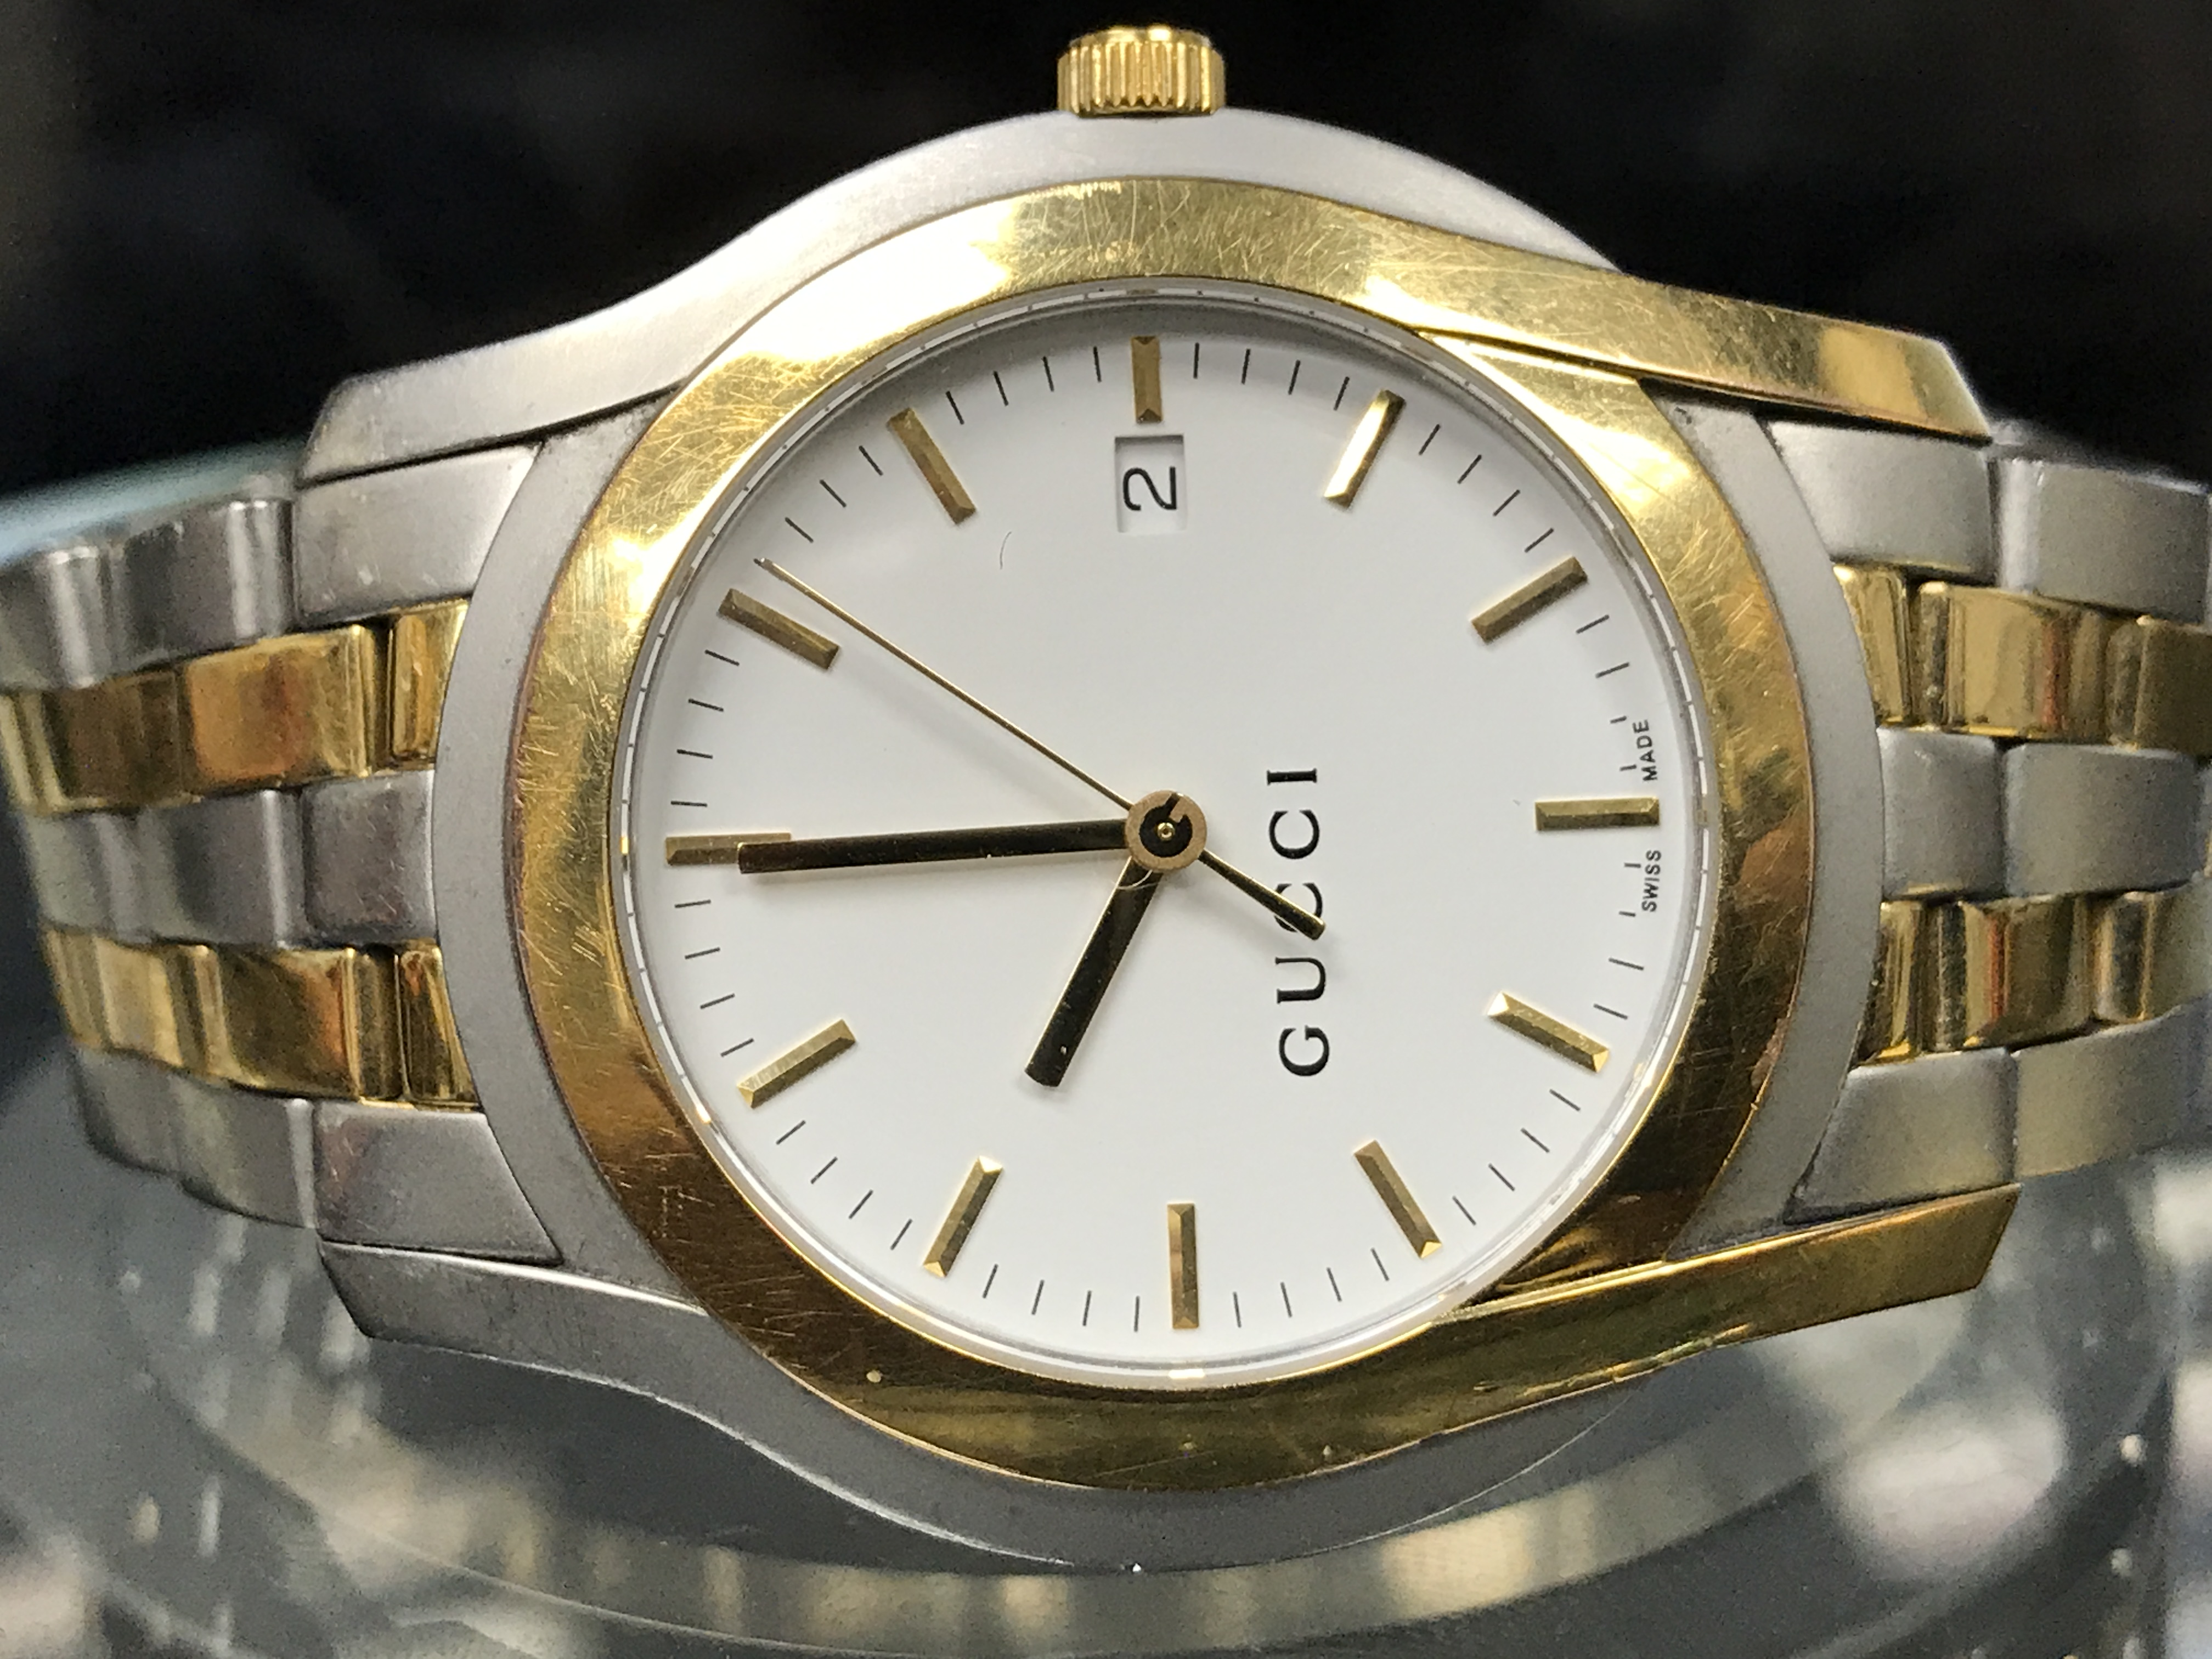 f331bd57908 Gucci - 5500 YA055216 Stainless Steel Gold Plated Quartz Men s Watch  (Pre-owned - No Box Papers) - Walmart.com